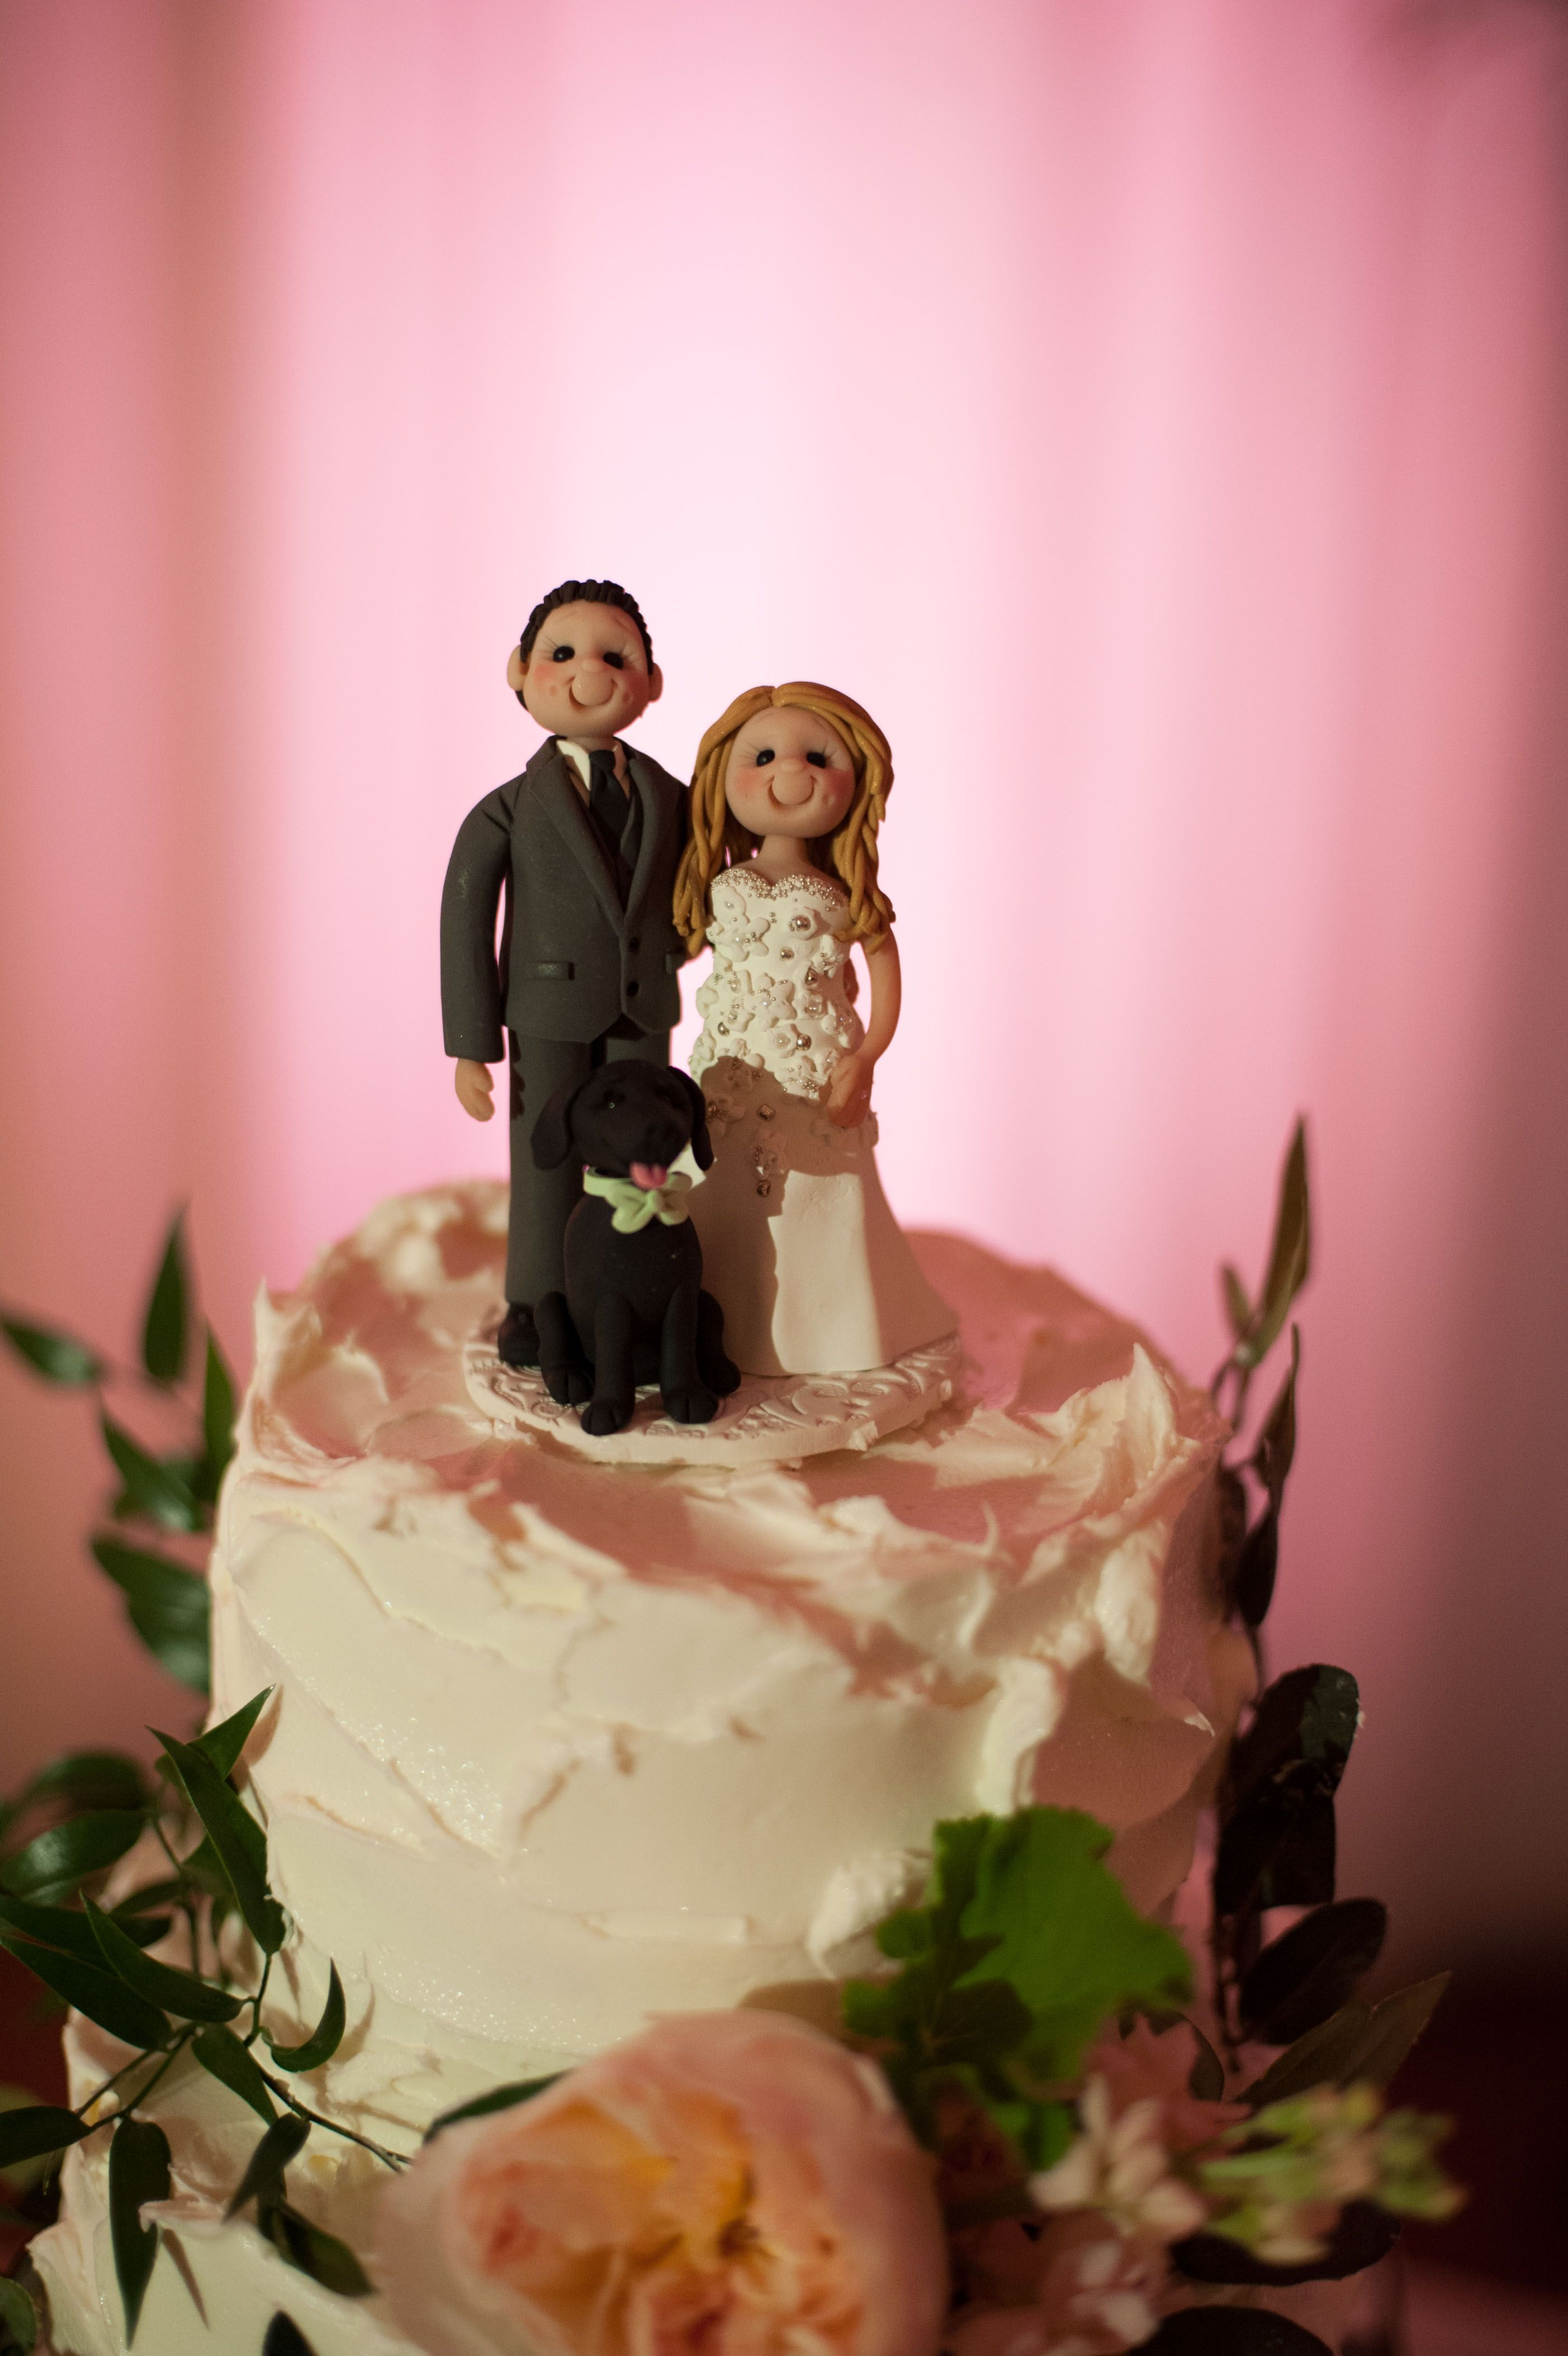 Clay wedding cake topper by syshopclayinaround